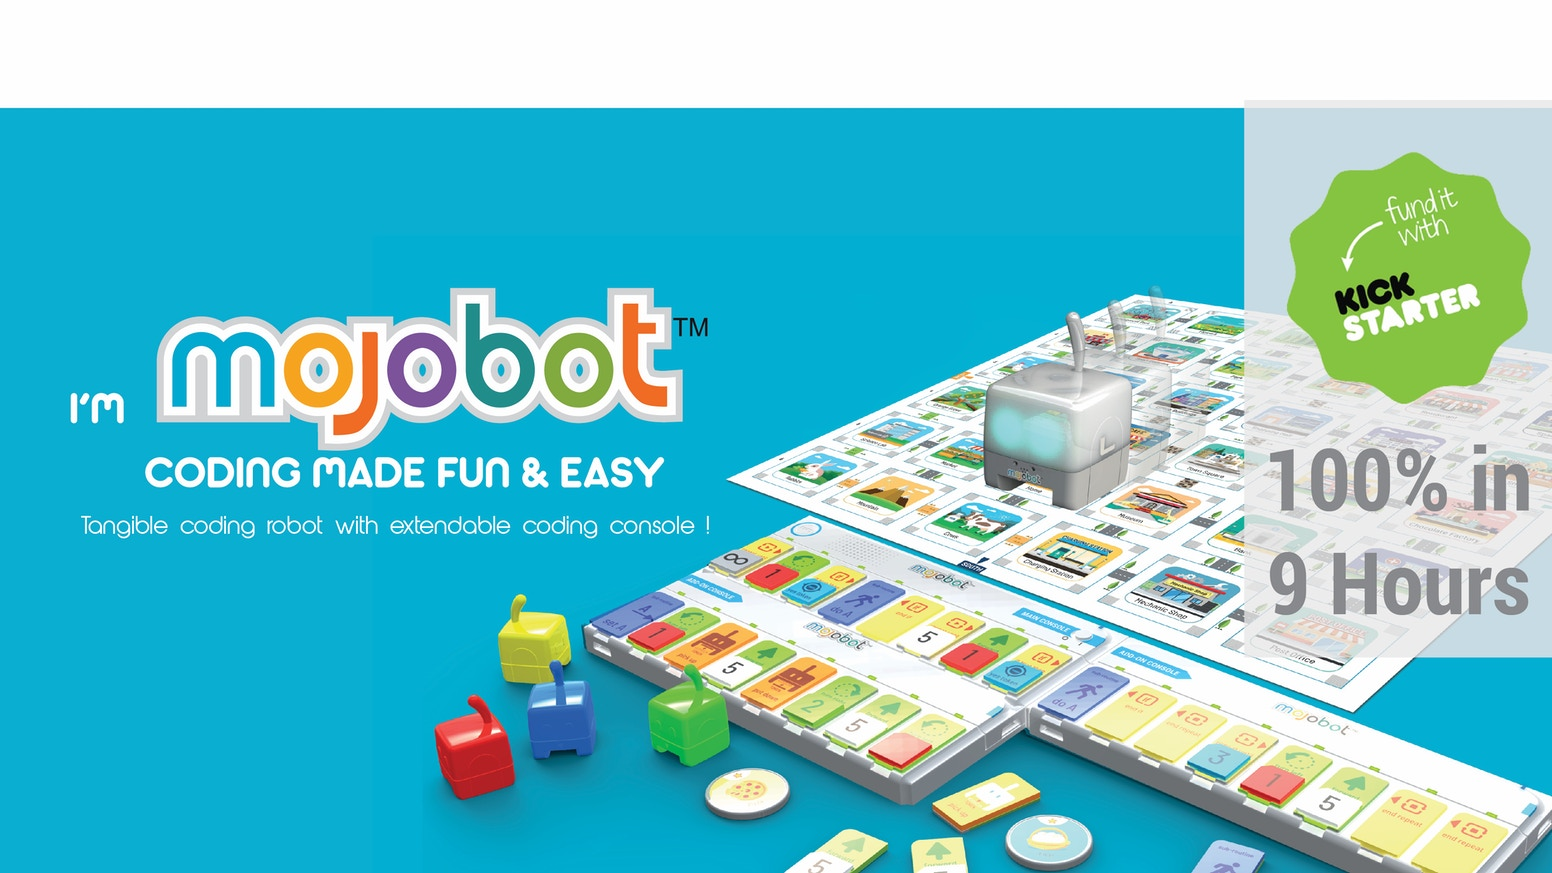 Teaching kids computer science and robotics through fun games and that brings family and friends togethe!  NOW Available on Amazon.com